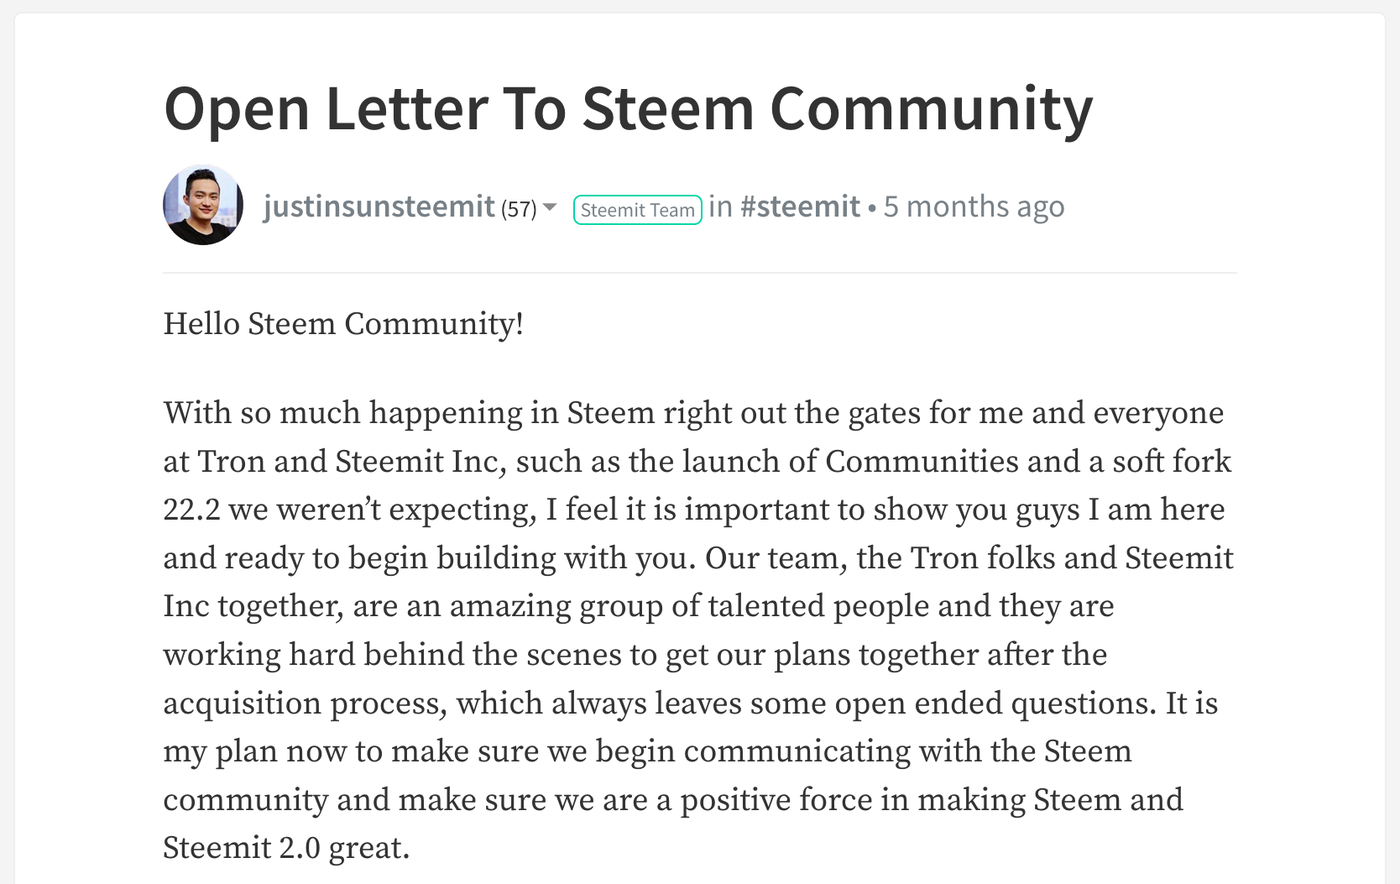 Sun's letter on Steemit